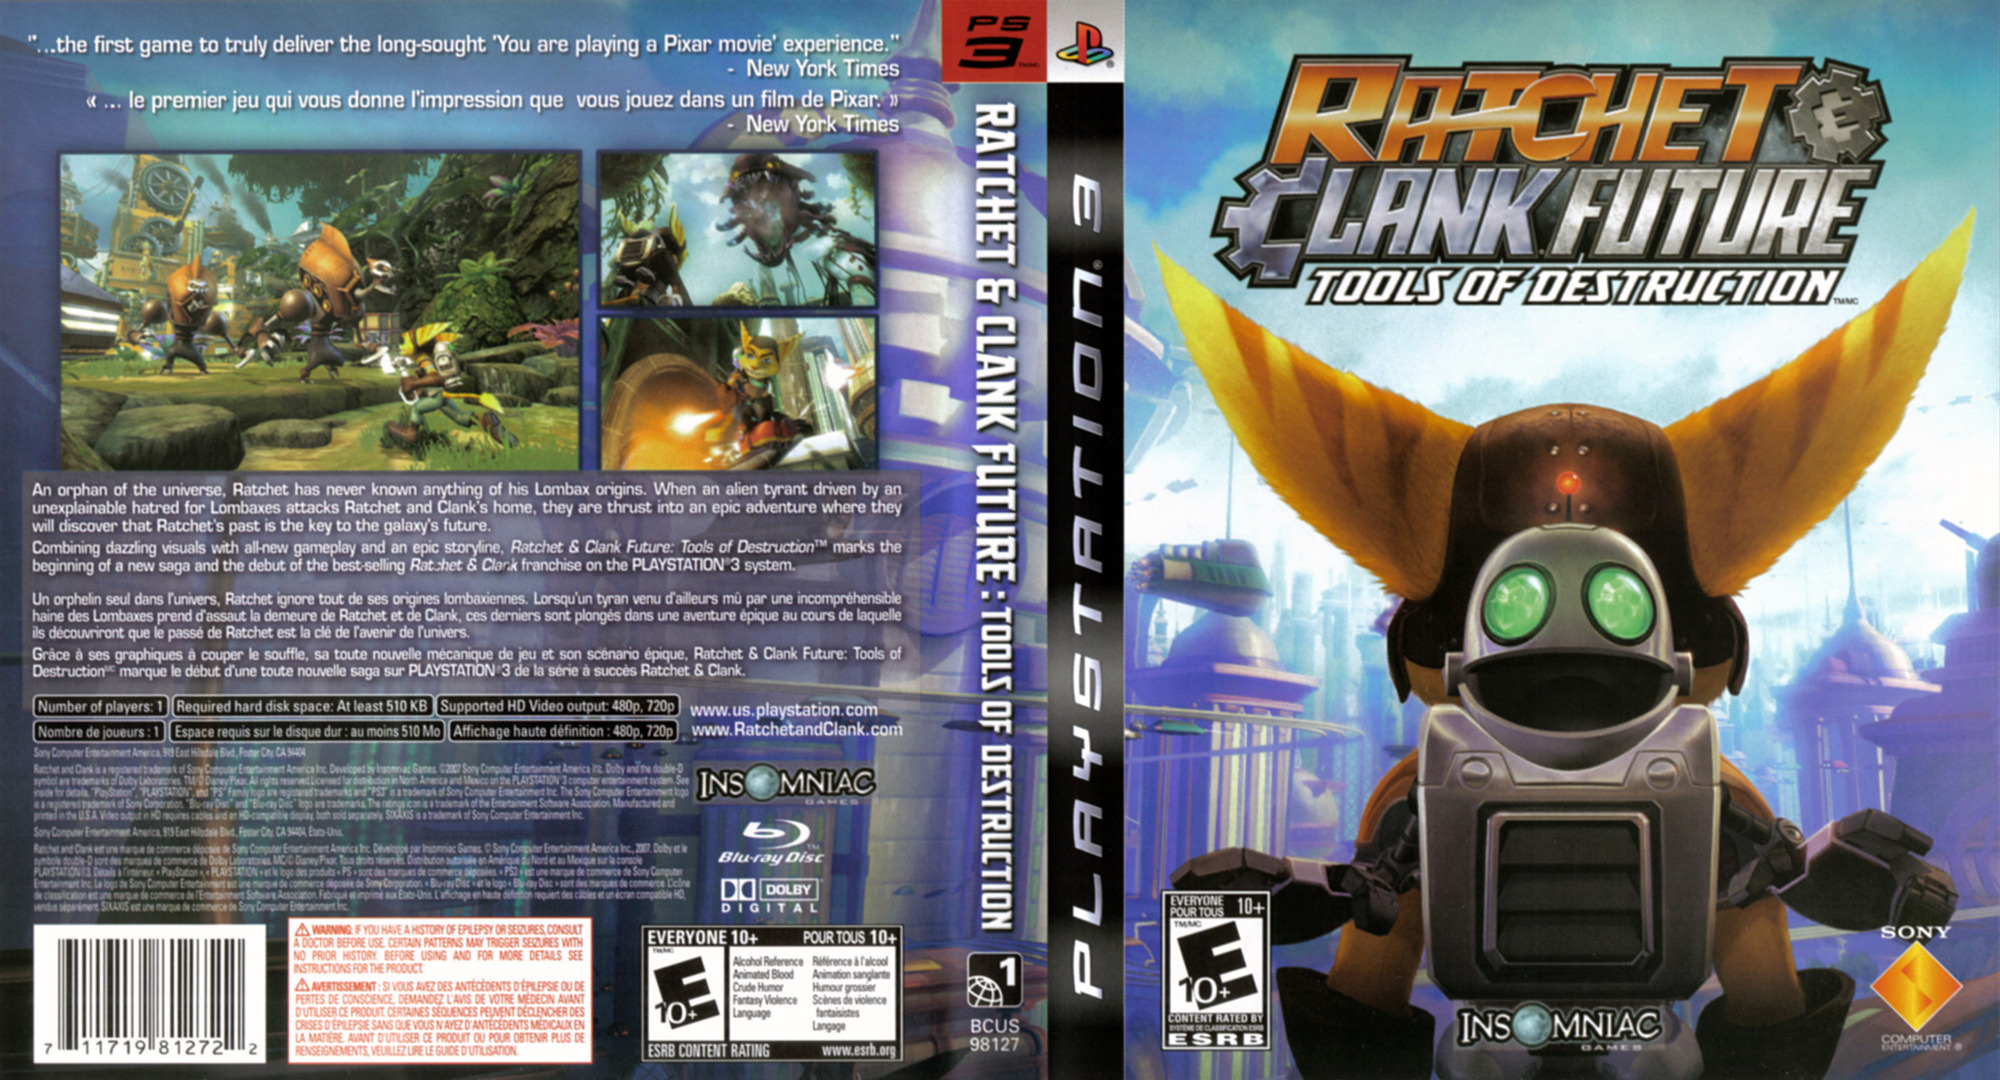 Ratchet & Clank: Future - Tools of Destruction PS3 coverfullHQ (BCUS98127)